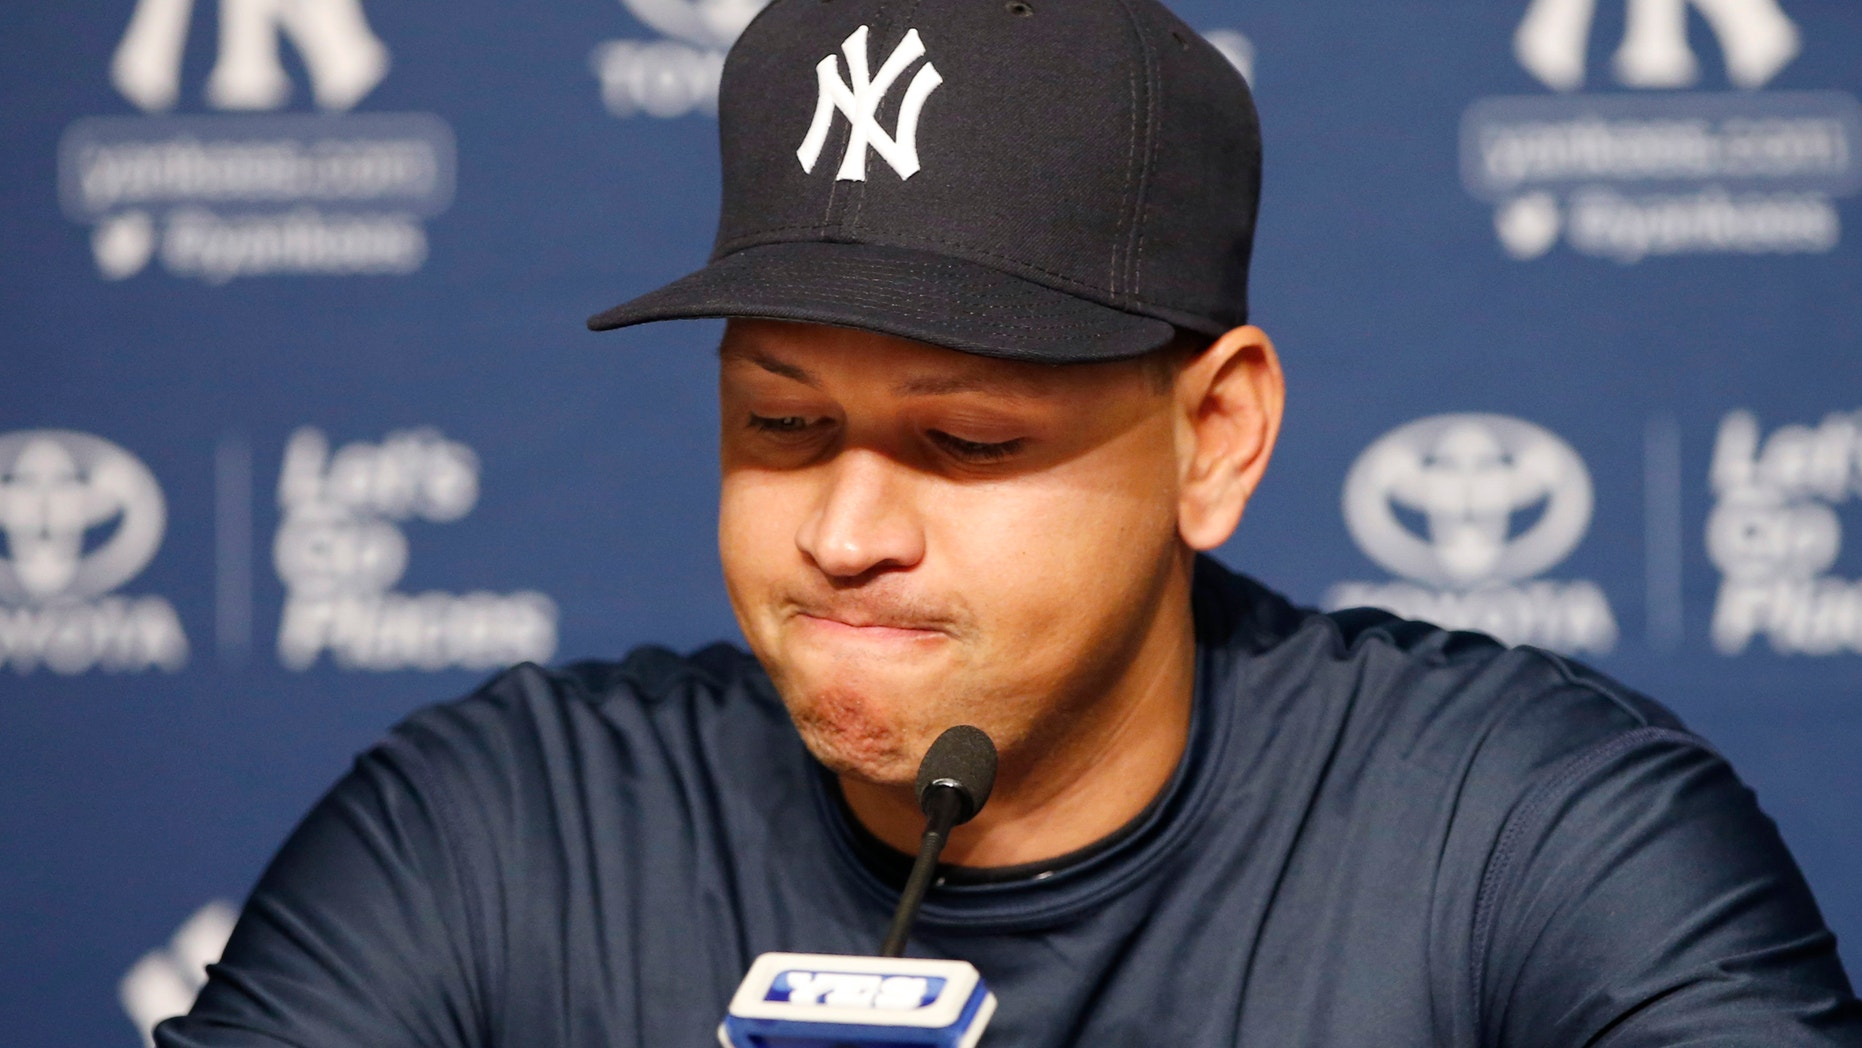 Yankees designated hitter Alex Rodriguez on Sunday announces his impending retirement.